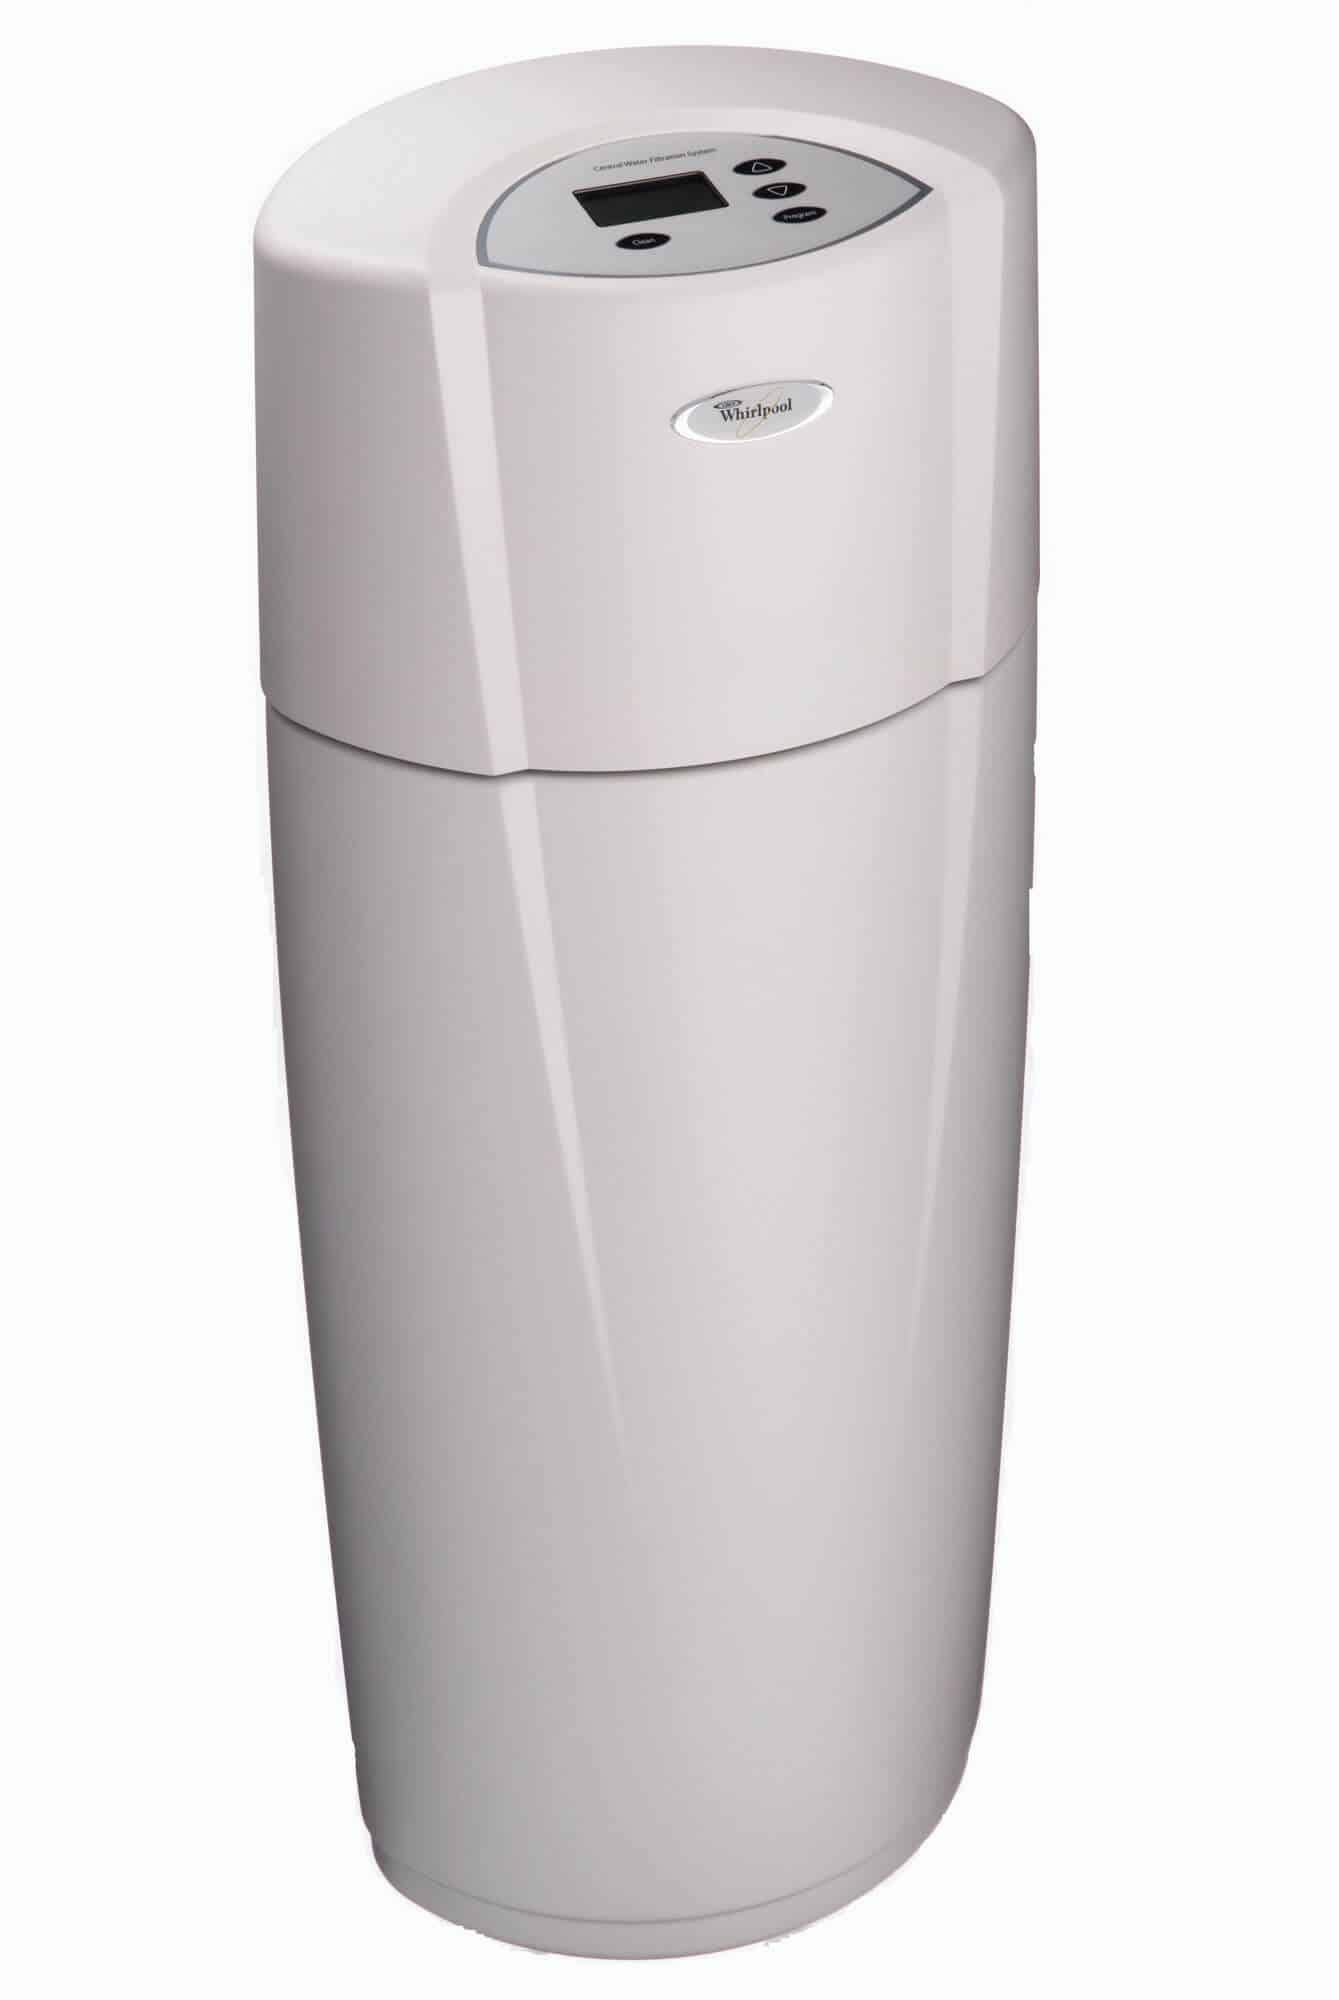 Whirlpool Whelj1 Review Disointing Whole House Water Filter